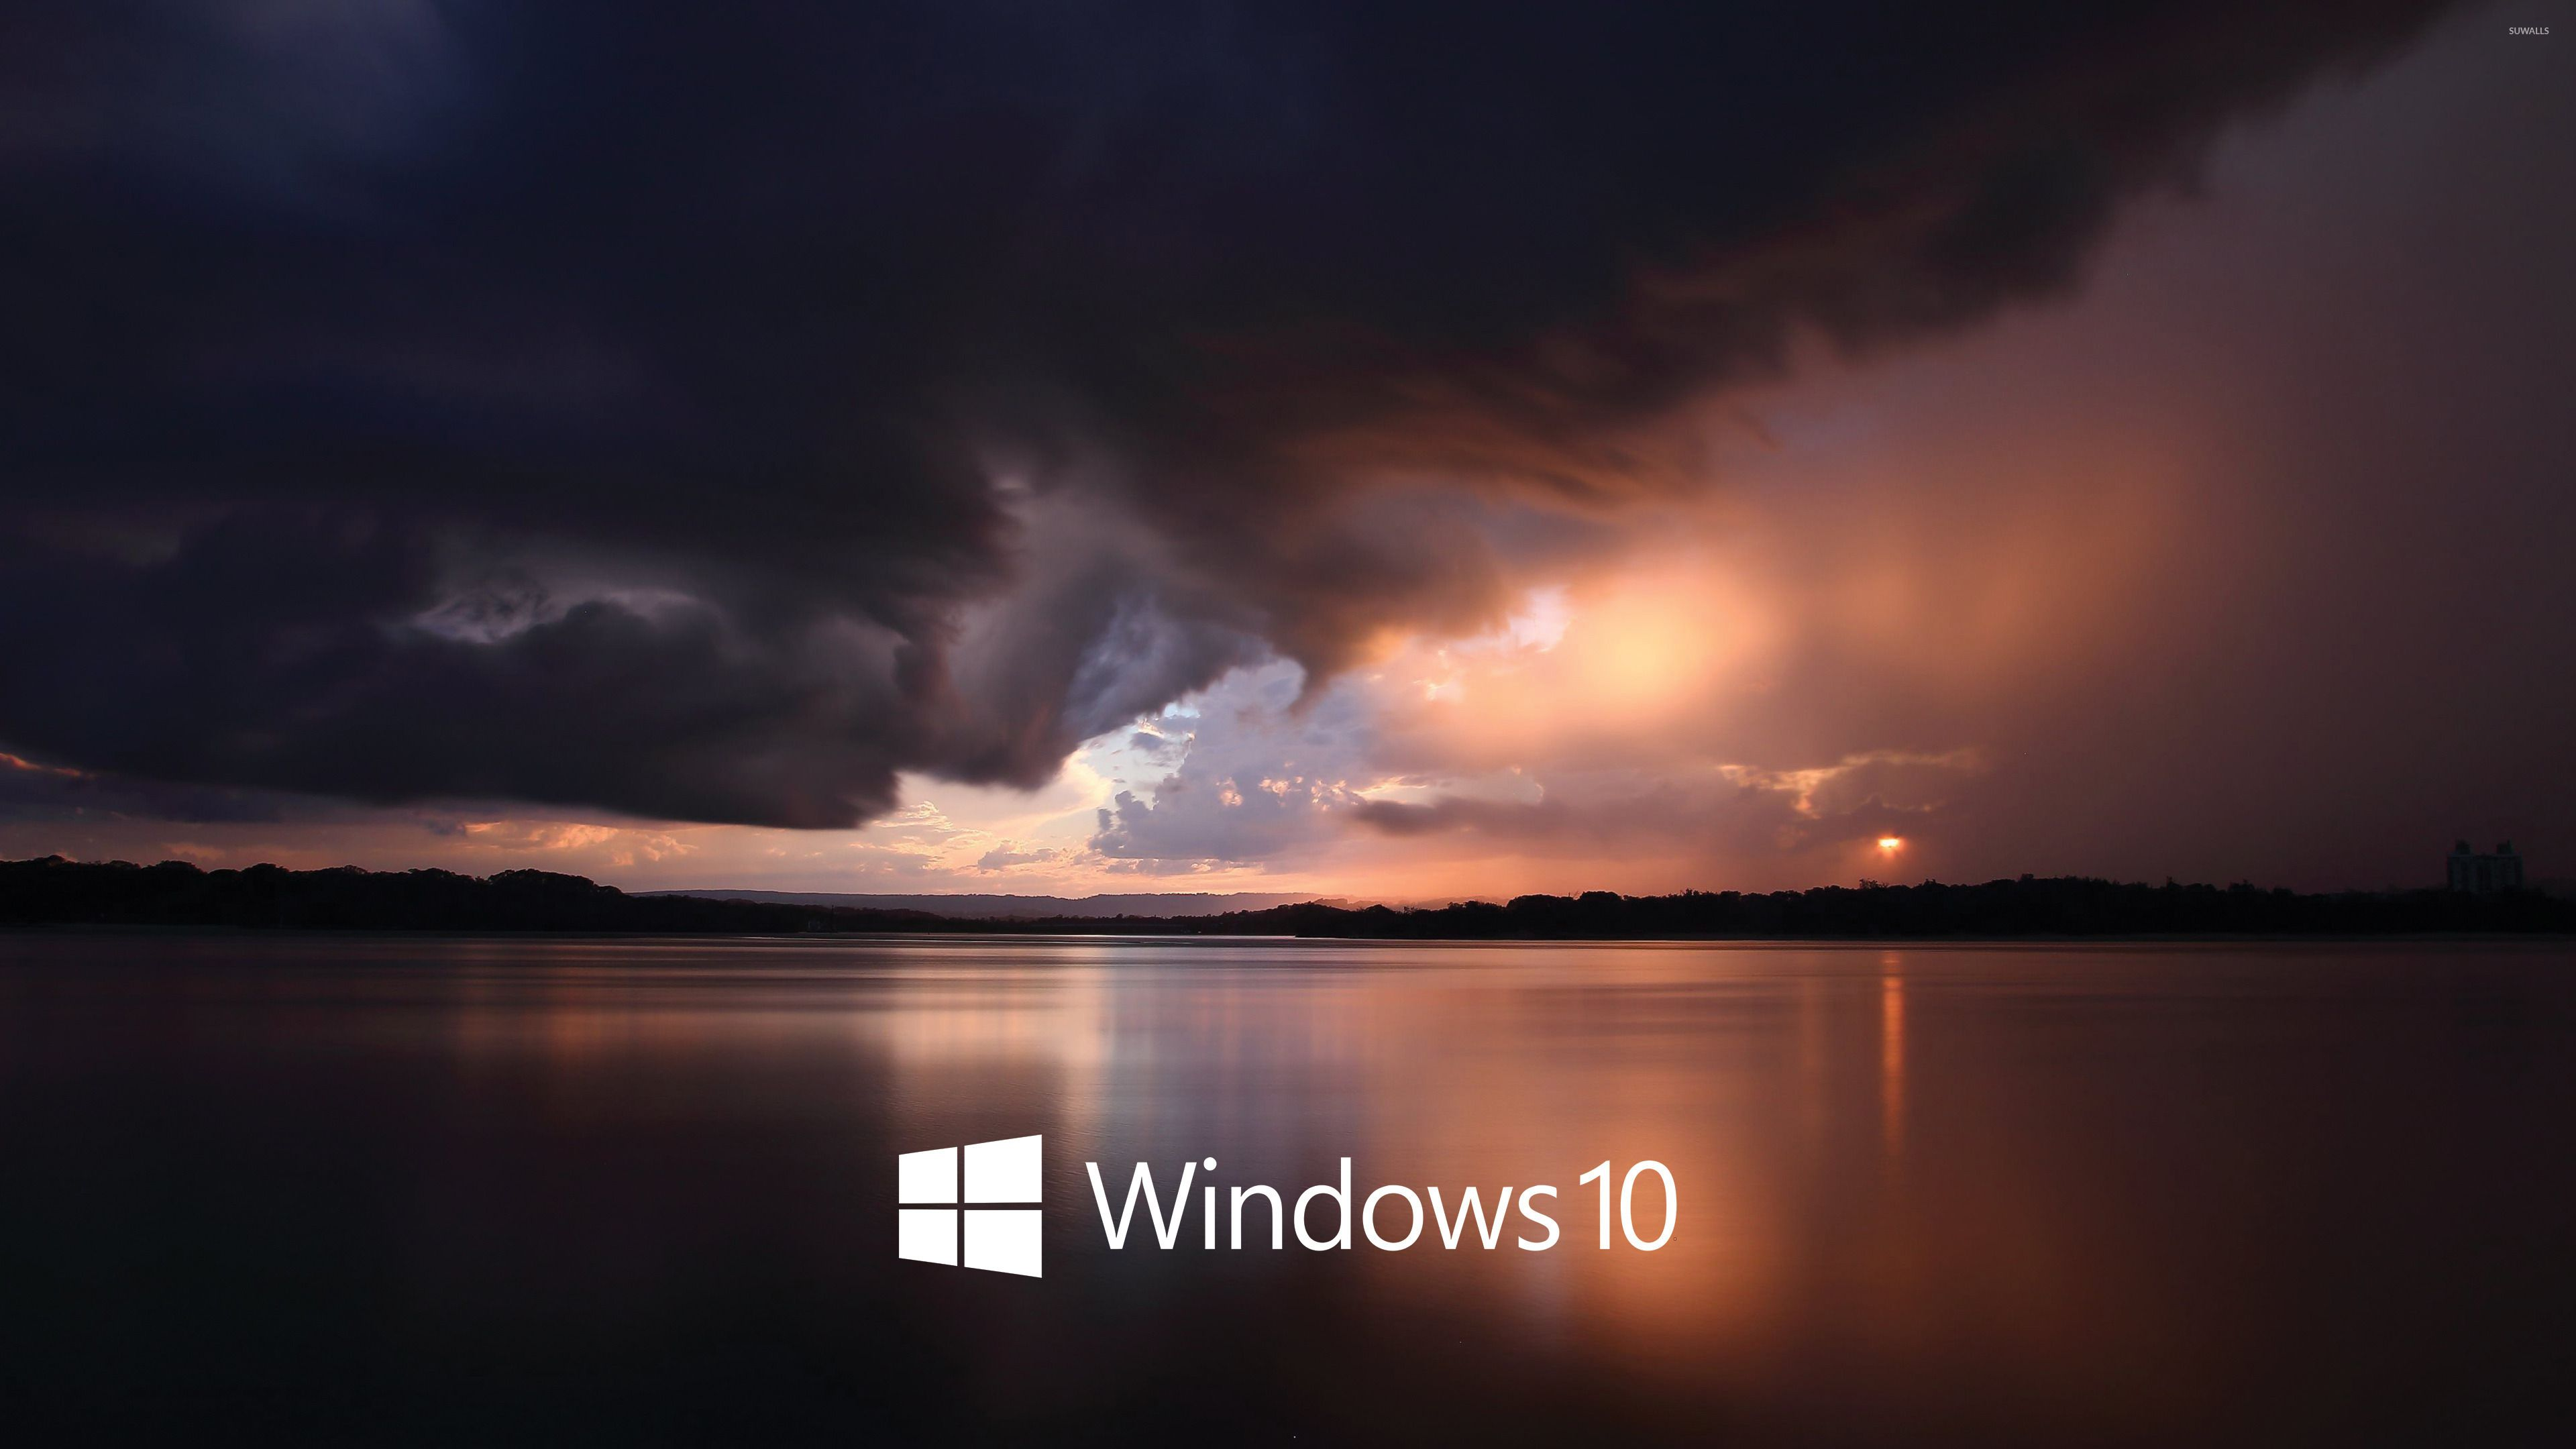 10 Best Windows 10 Wallpapers Free Hd Wallpapers Part 4 Wallpaper Windows 10 Windows Wallpaper Windows Desktop Wallpaper